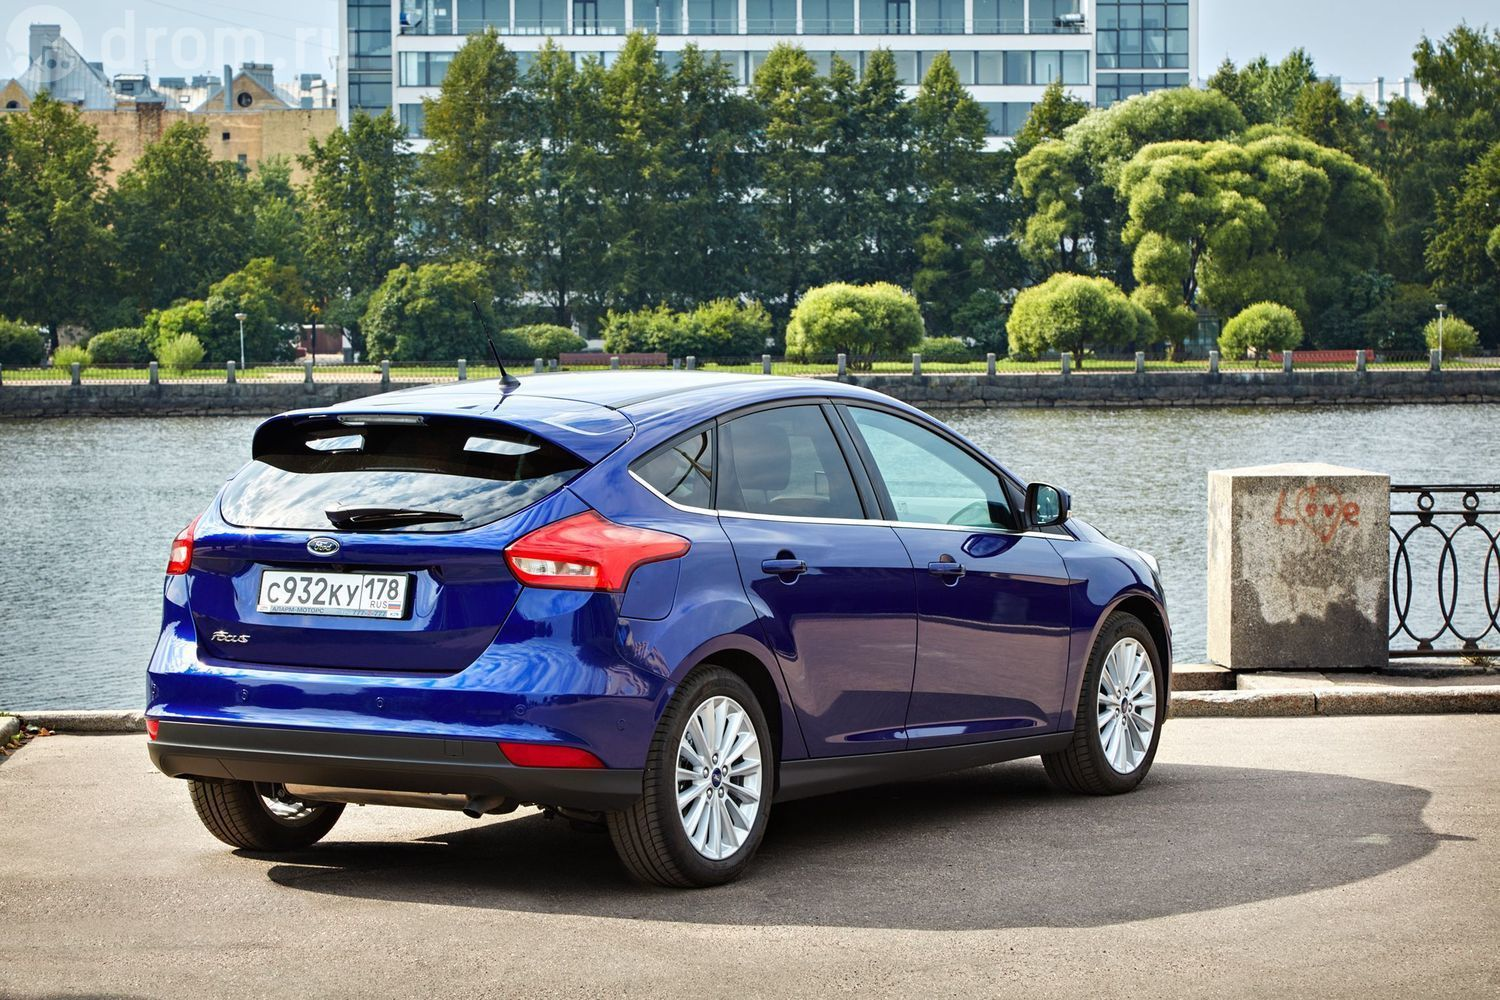 Ford Focus Reviews, Ratings & Pricing - Consumer Reports